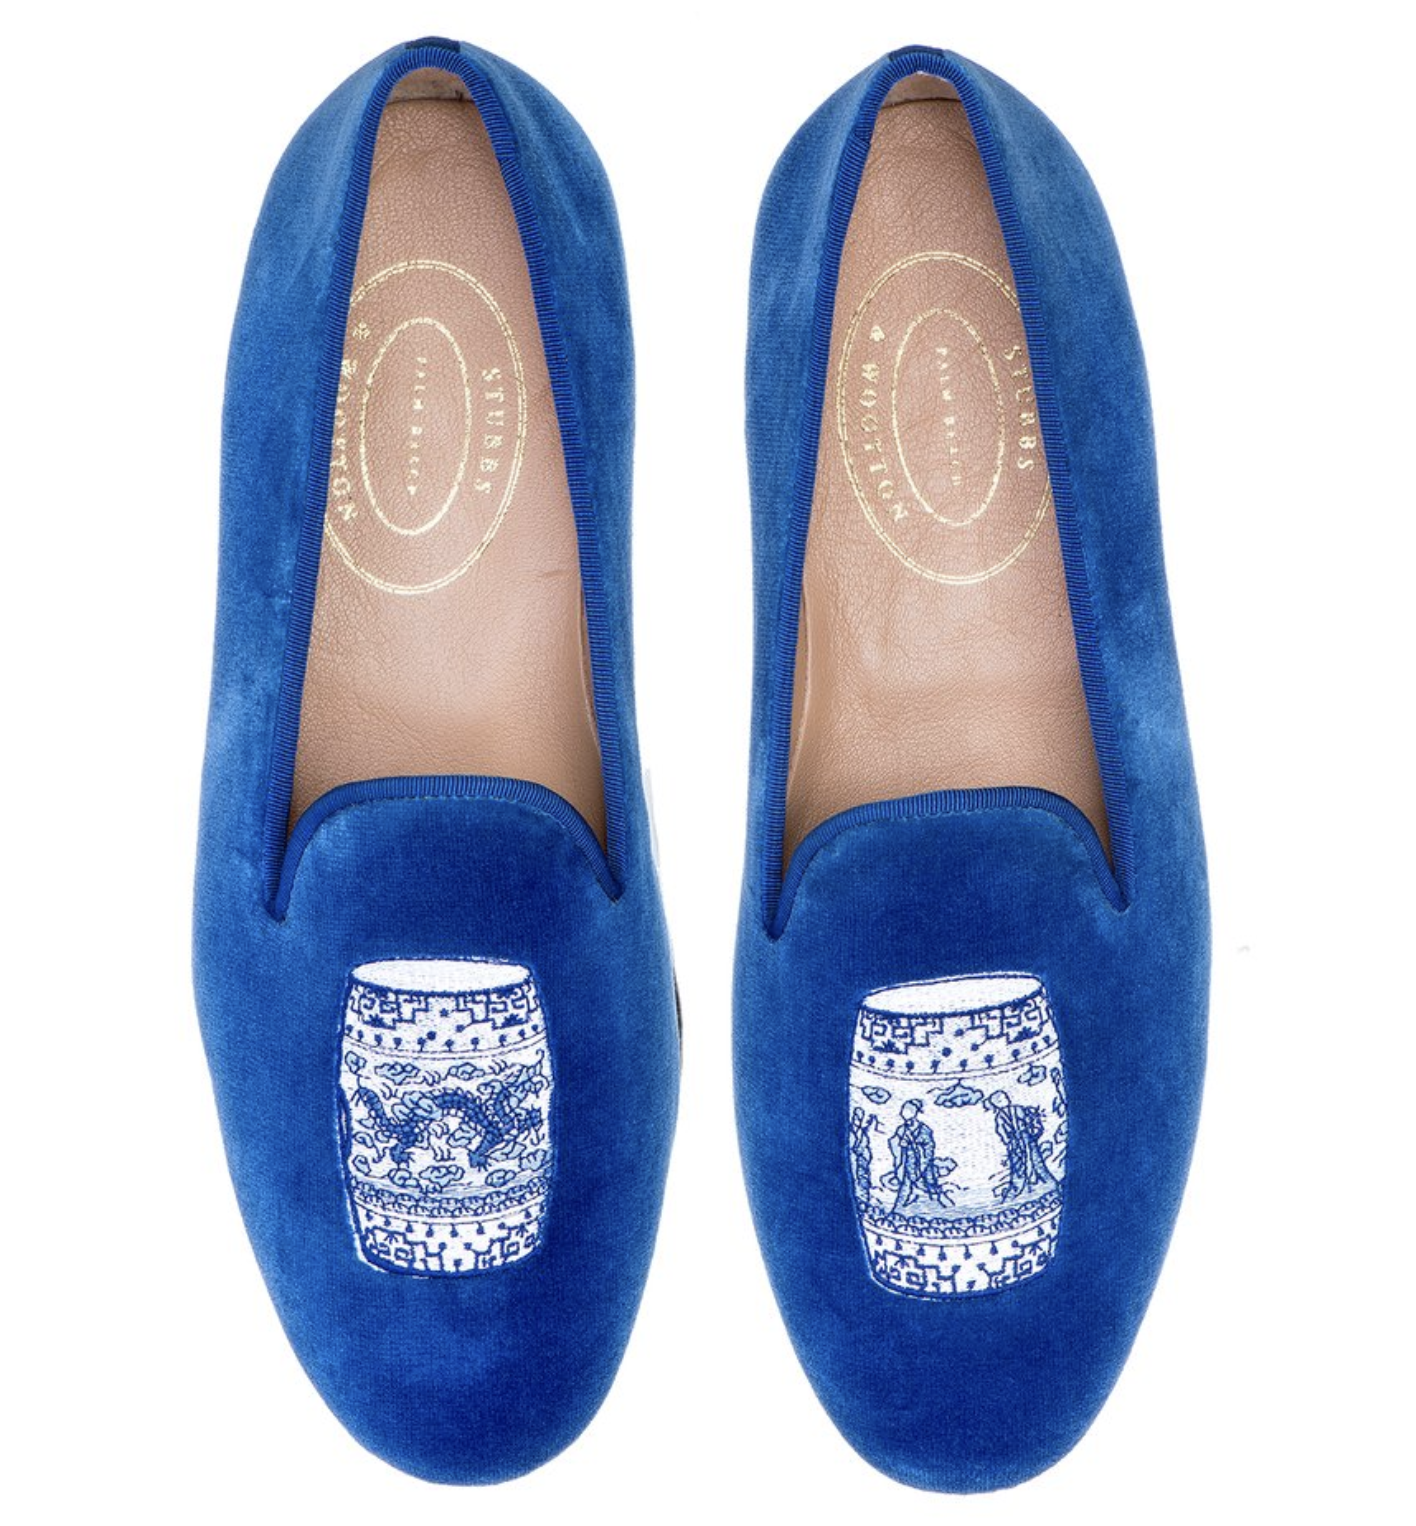 Stubbs and Wootton Chinoiserie Loafers 7